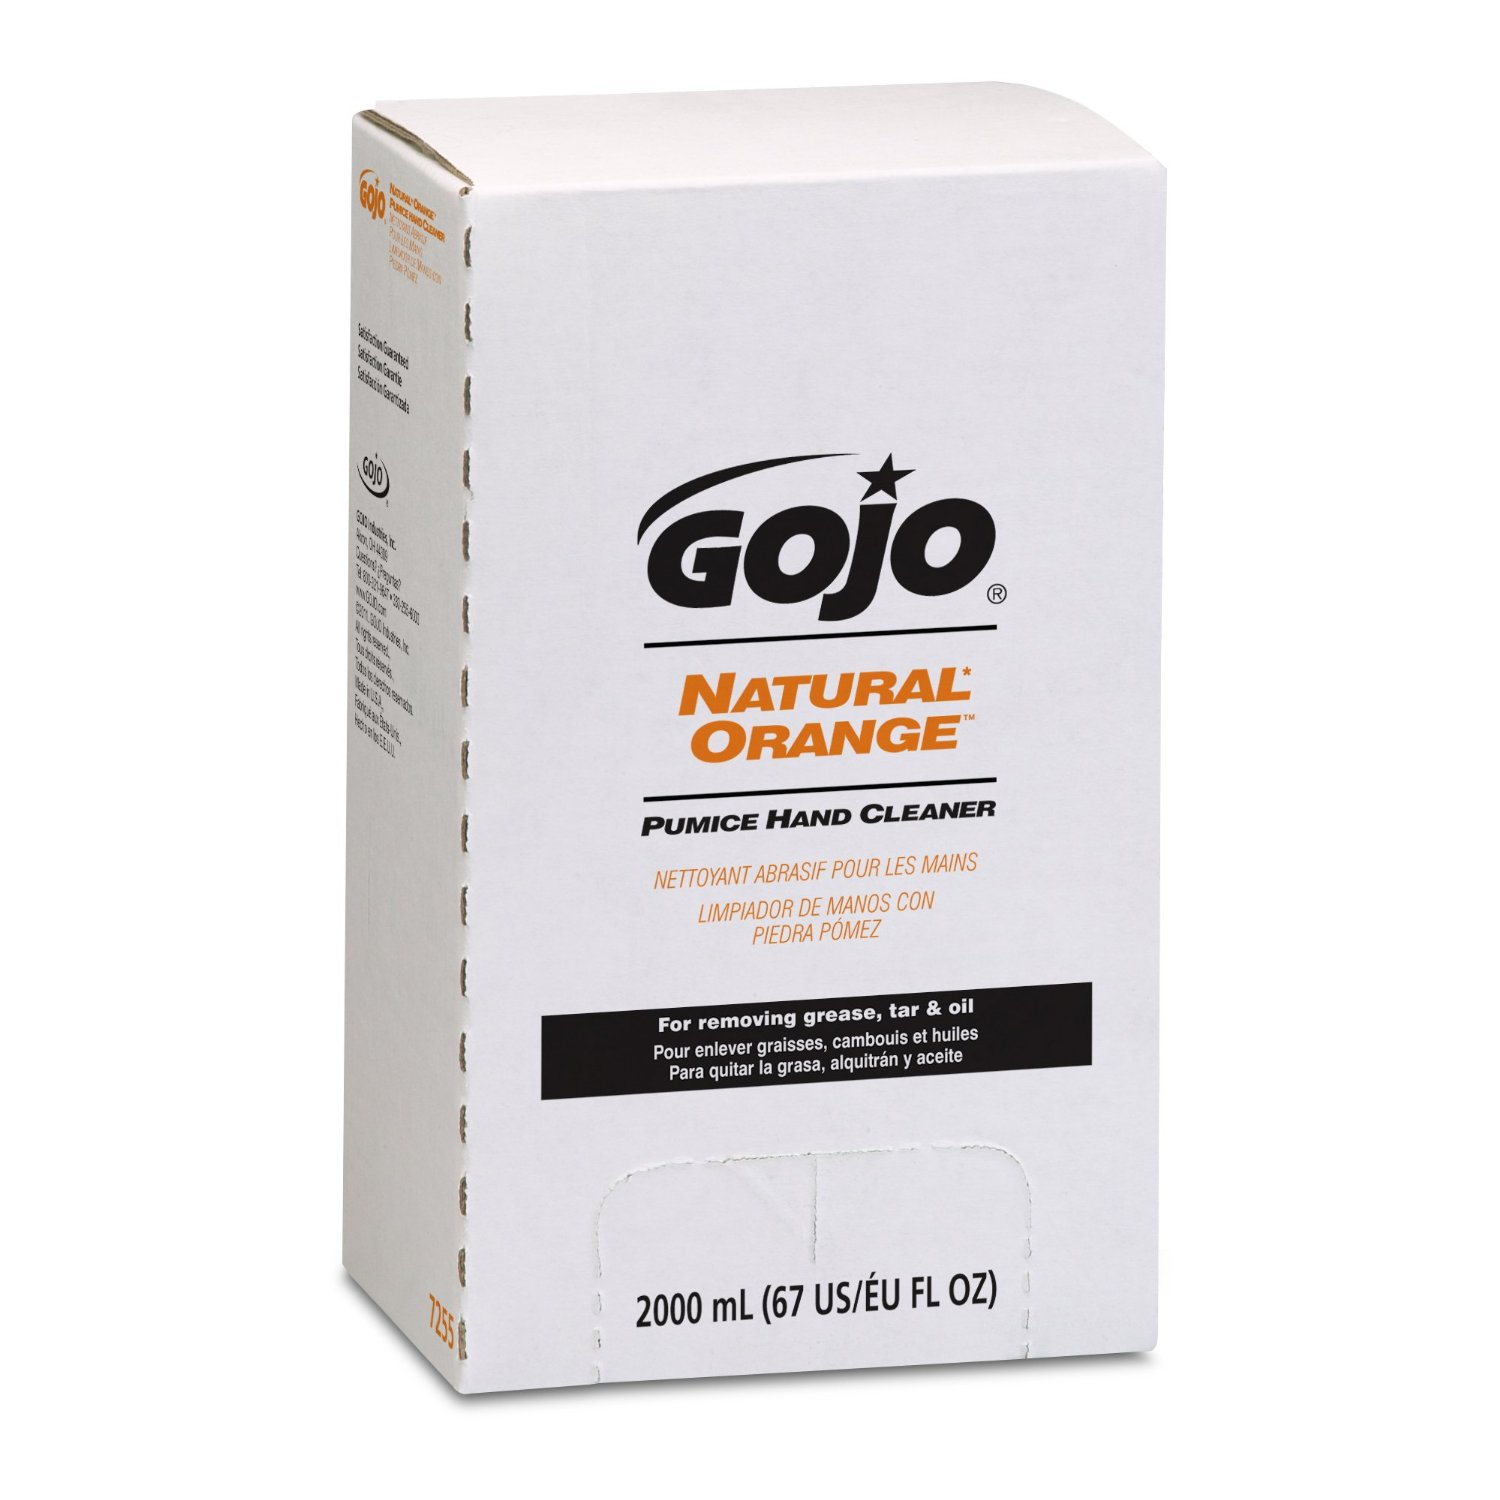 GOJO ORANGE LOTION HAND CLEANER W/ PUMICE  2000 ML-4/CS.